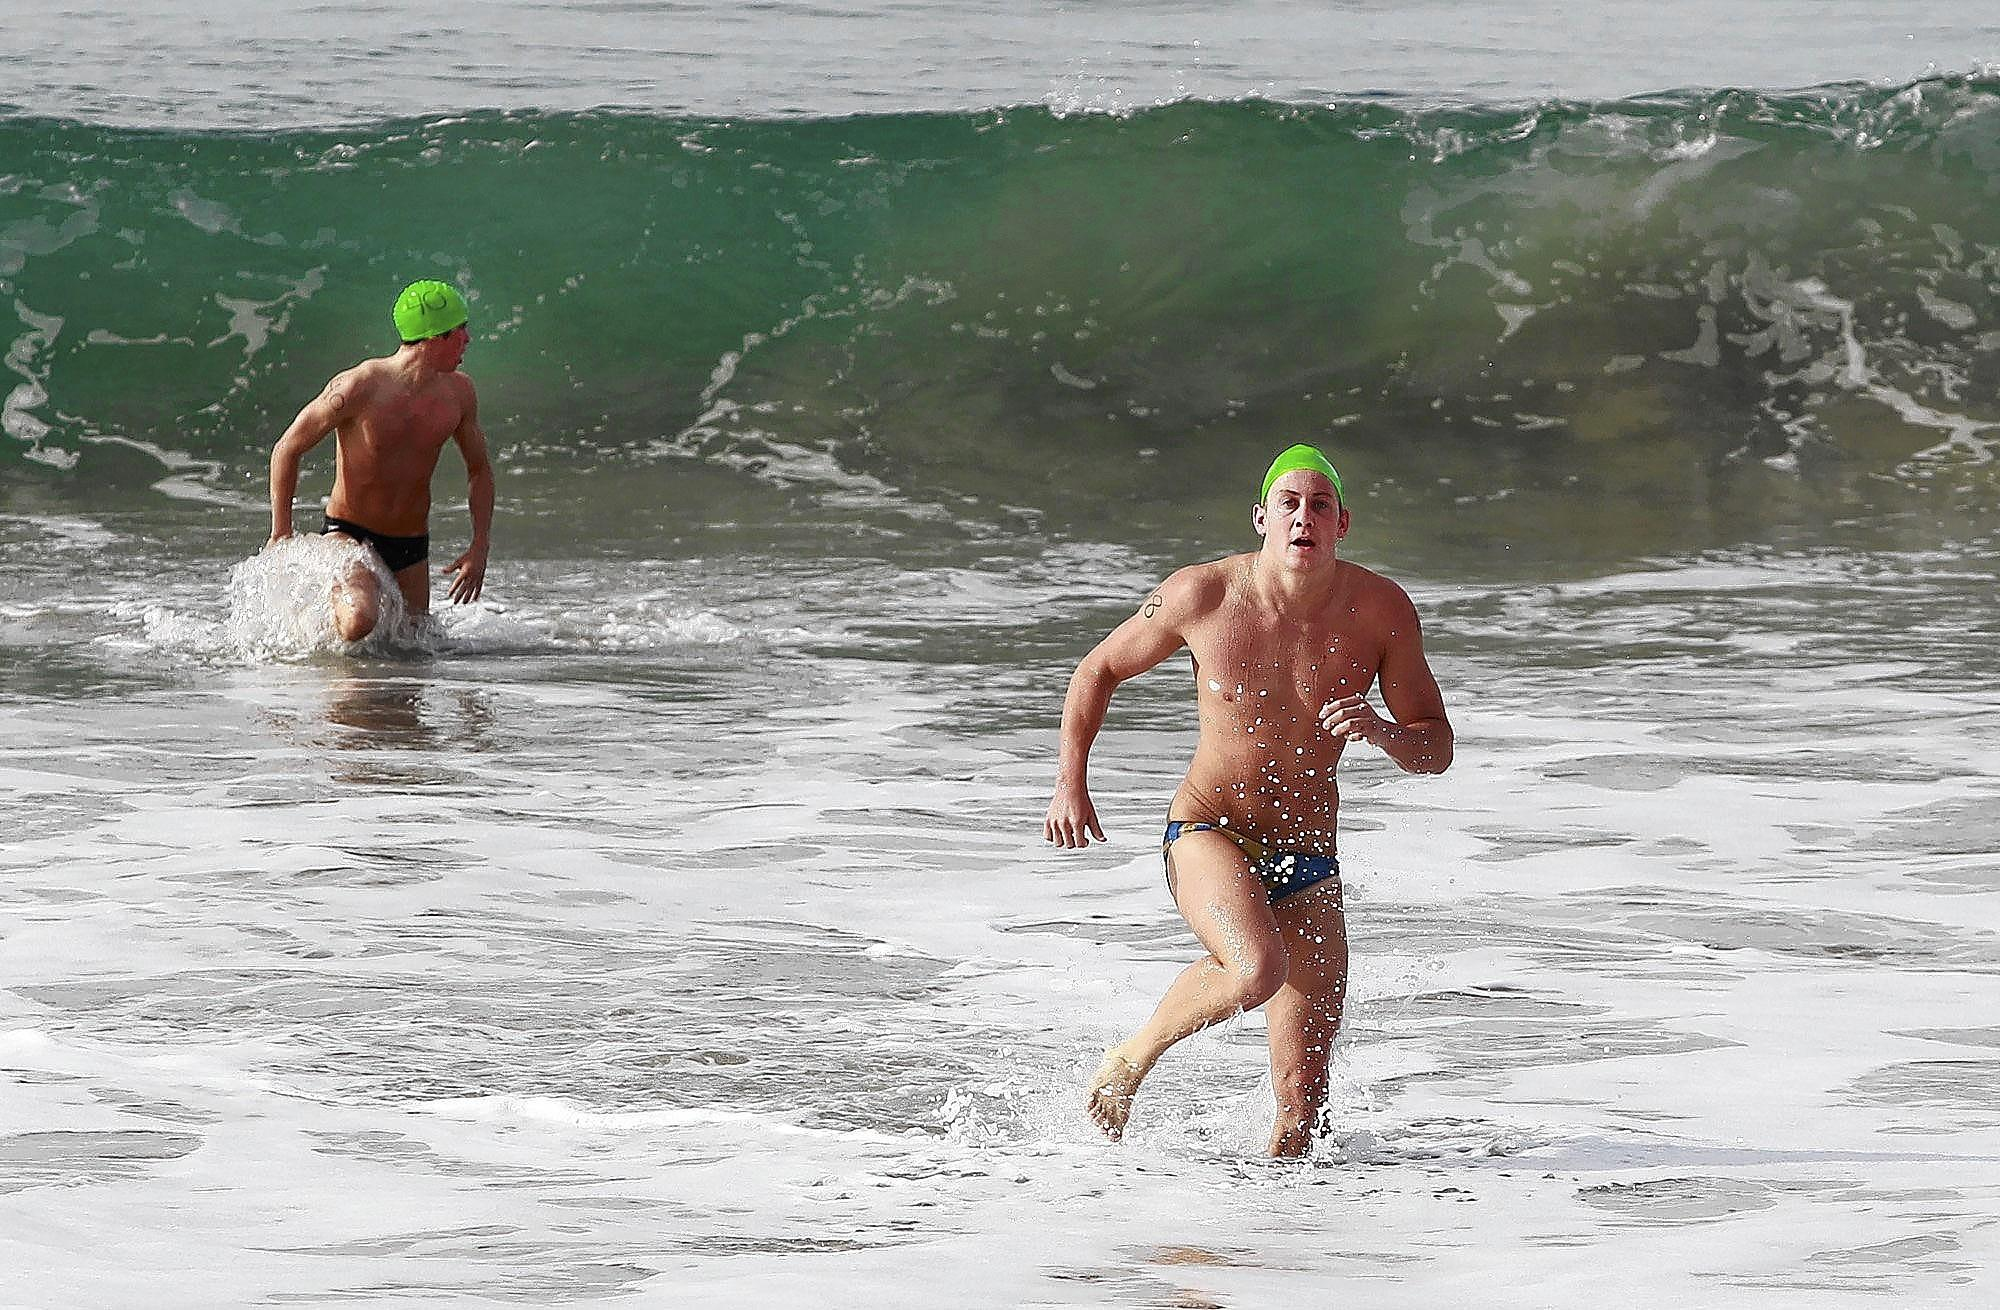 Russell Taylor, right, of Laguna Hills, is first to hit the shore after he completed the 1,000-meter swim to Bird Rock and back in the required 20 minutes during Laguna Beach lifeguard tryouts at Main Beach on Saturday.